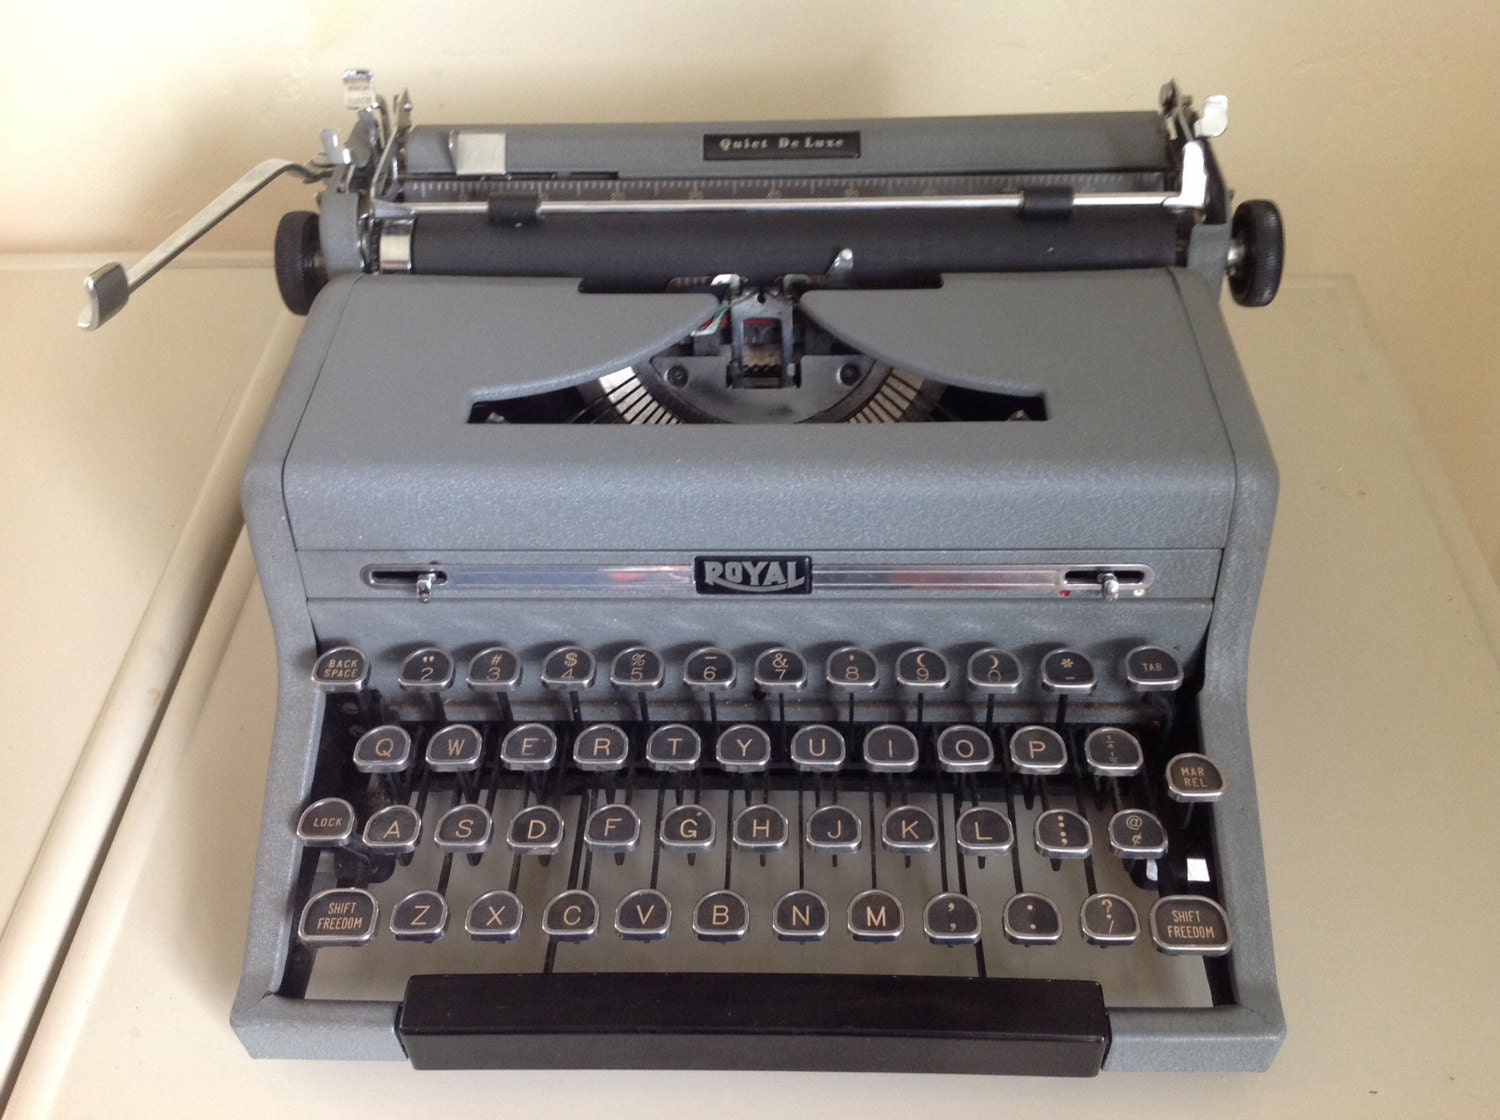 royal quiet deluxe typewriter manual